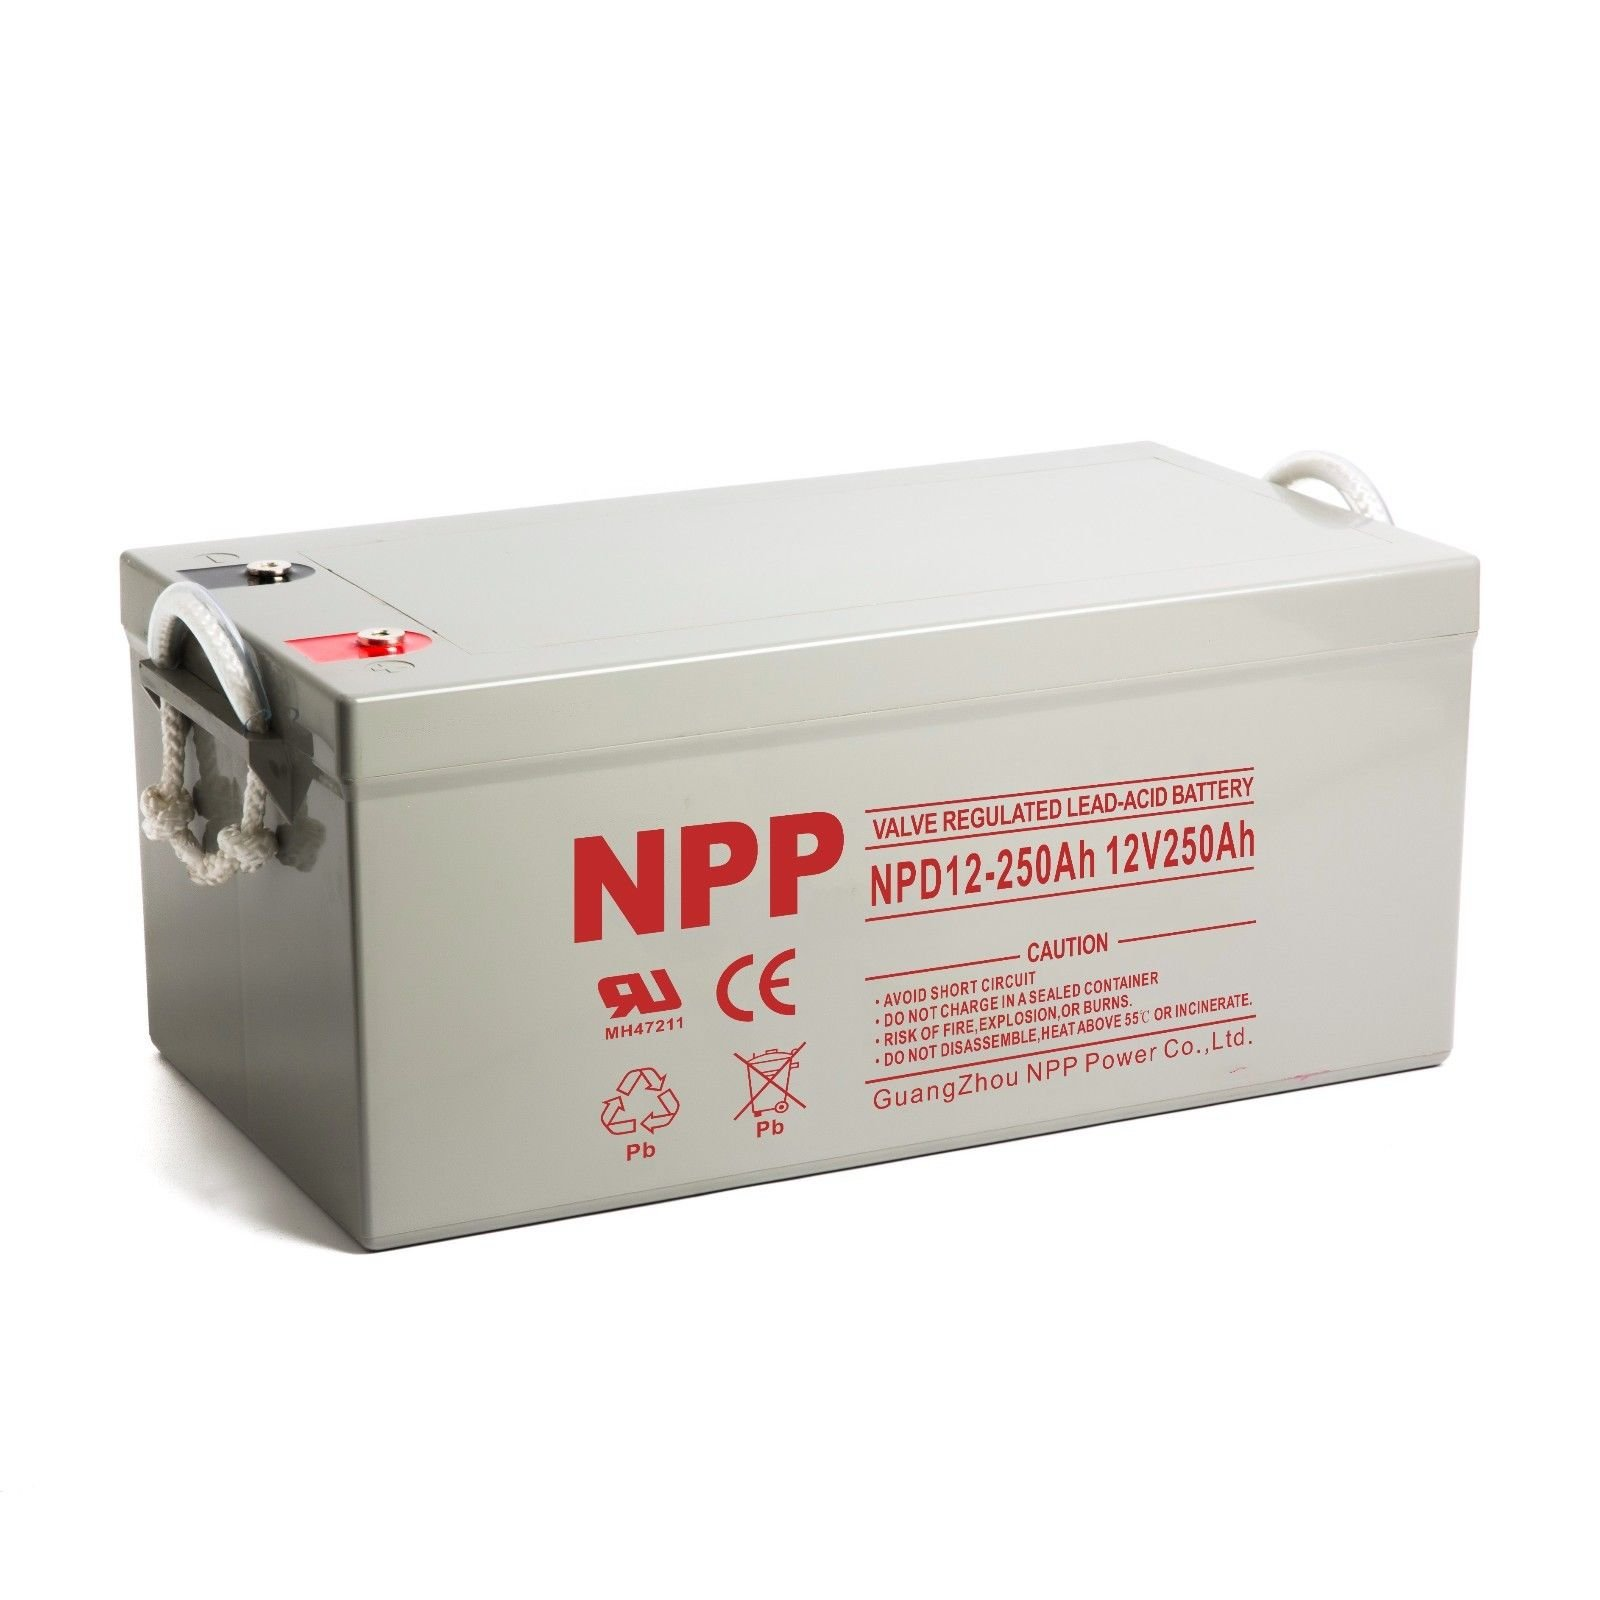 NPP NPD12-250Ah Rechargeable Sealed Lead Acid 8D Deep Cycle 12V 250Ah Battery with Button Style Terminals